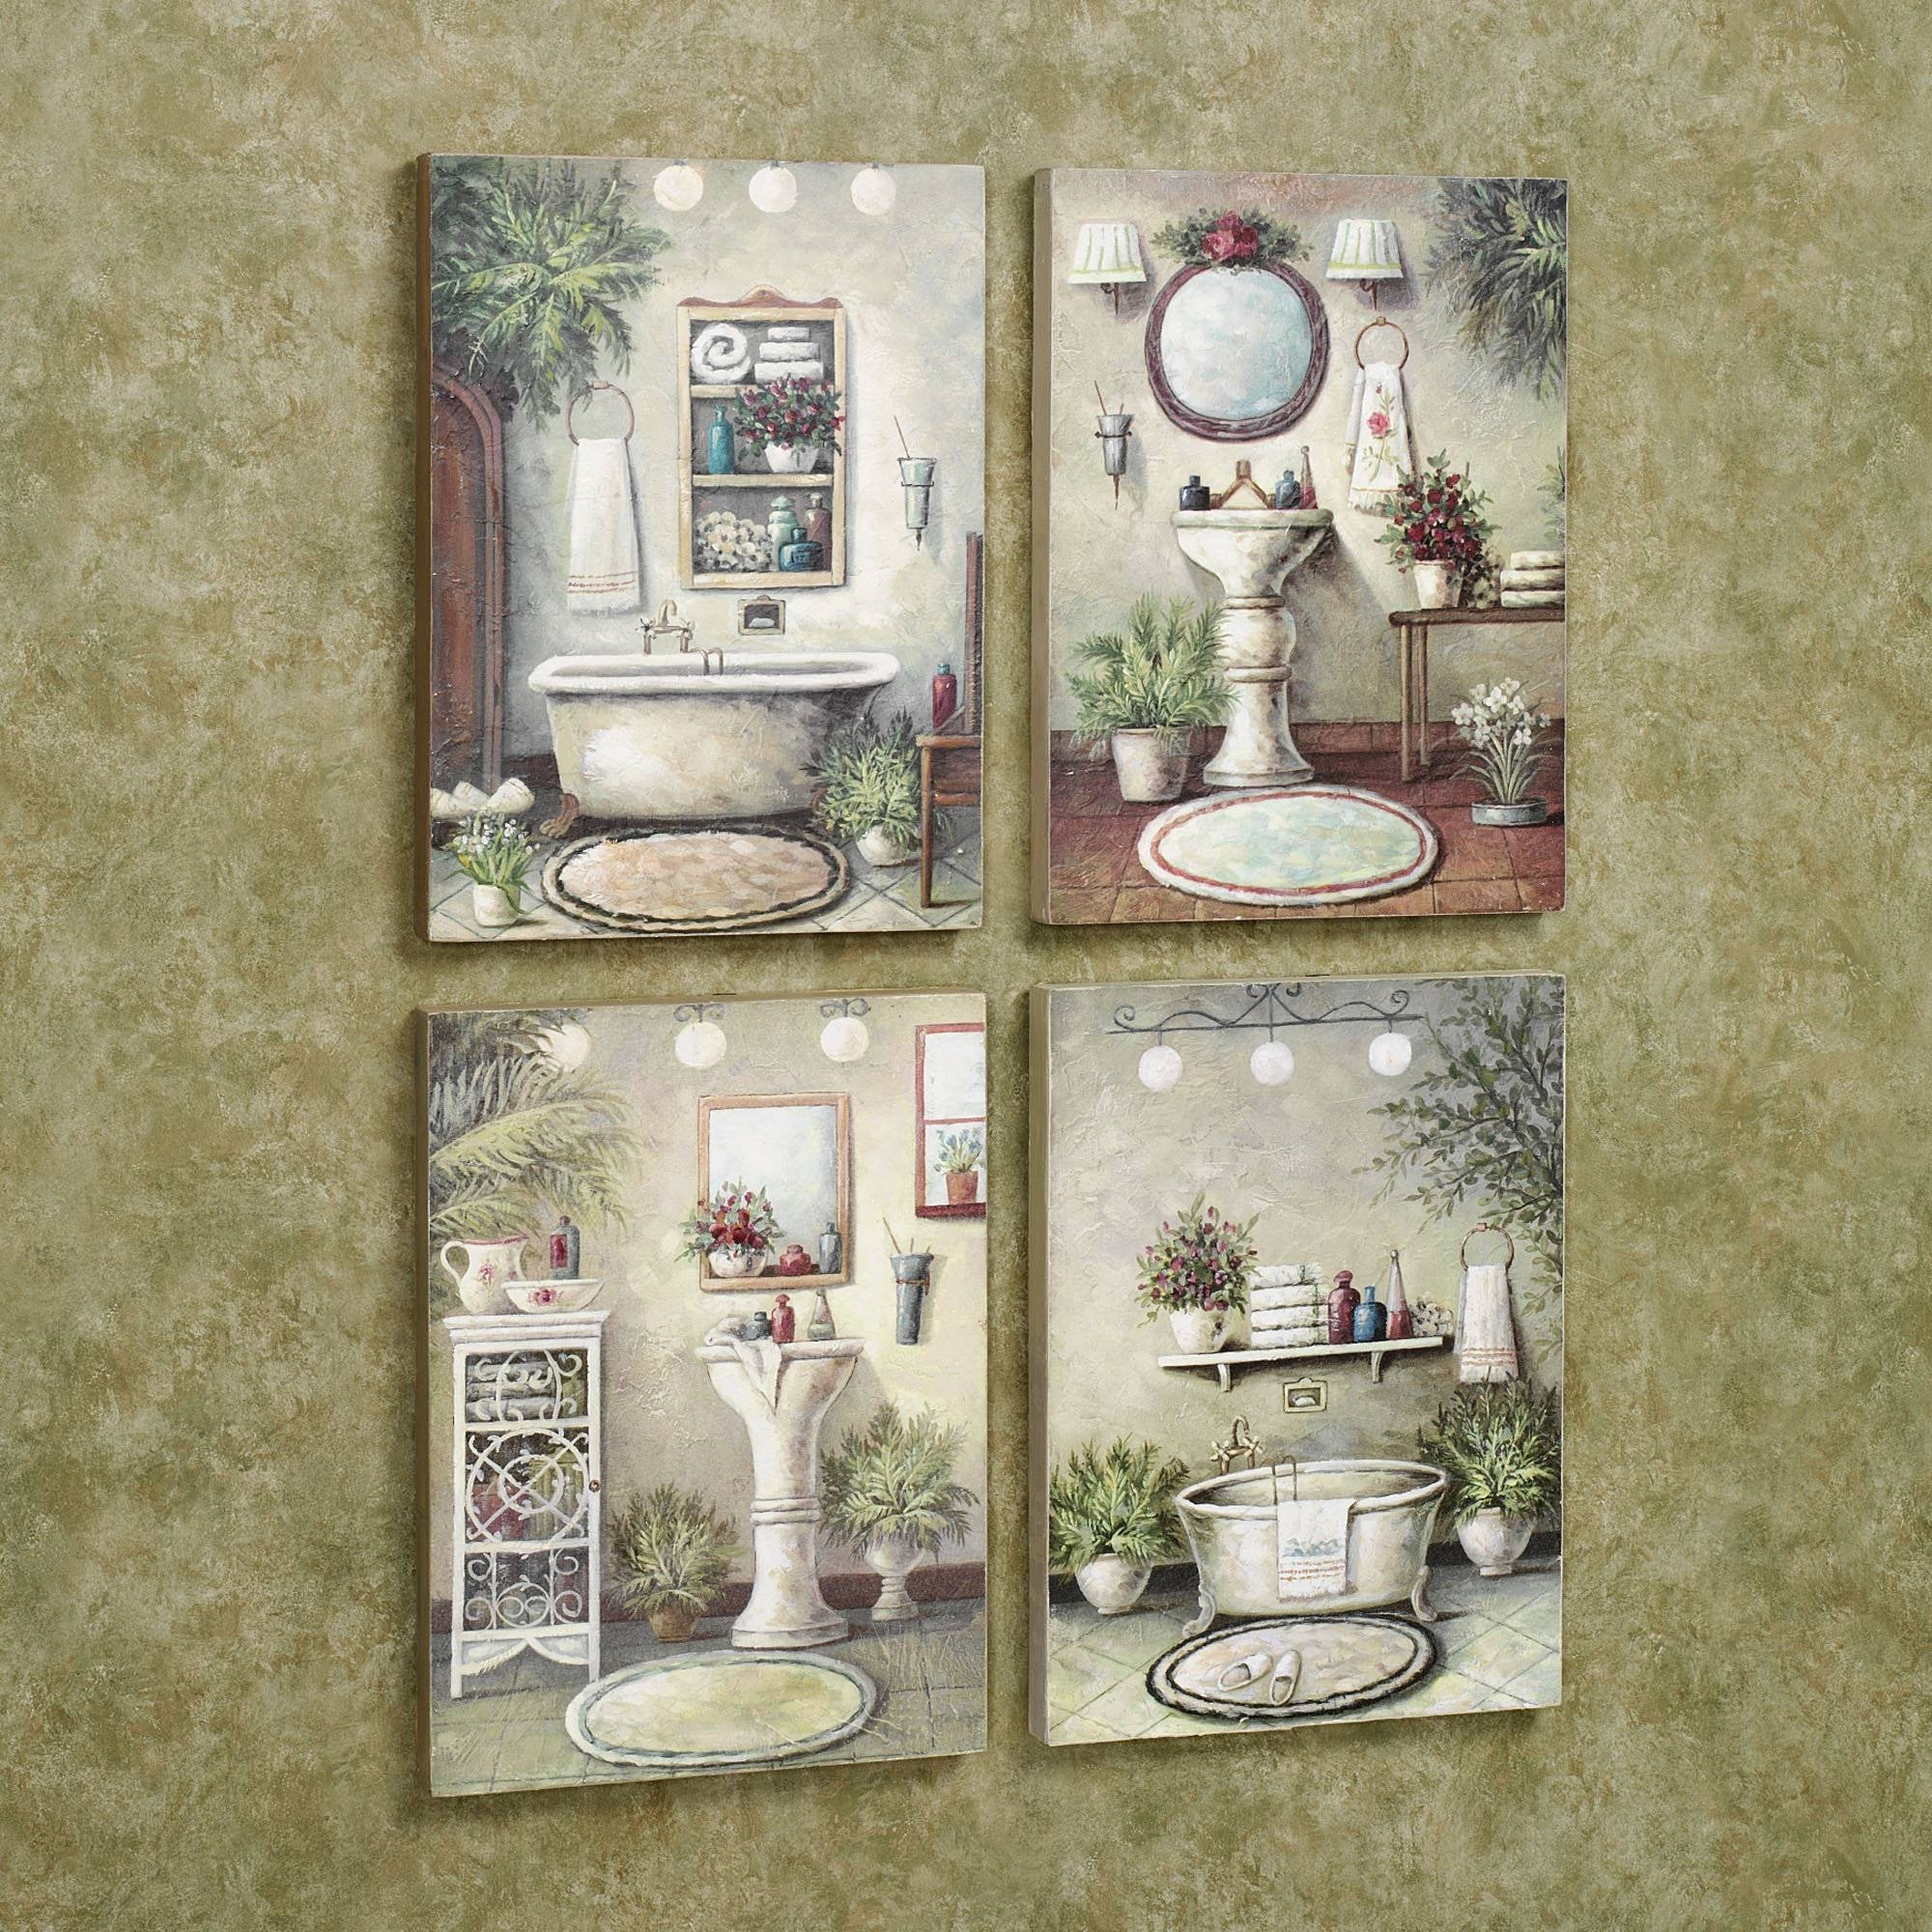 Wall Art Design: Wall Art For Bathroom Decor Rectangle White Brown Within Recent Bathroom Wall Hangings (View 5 of 20)